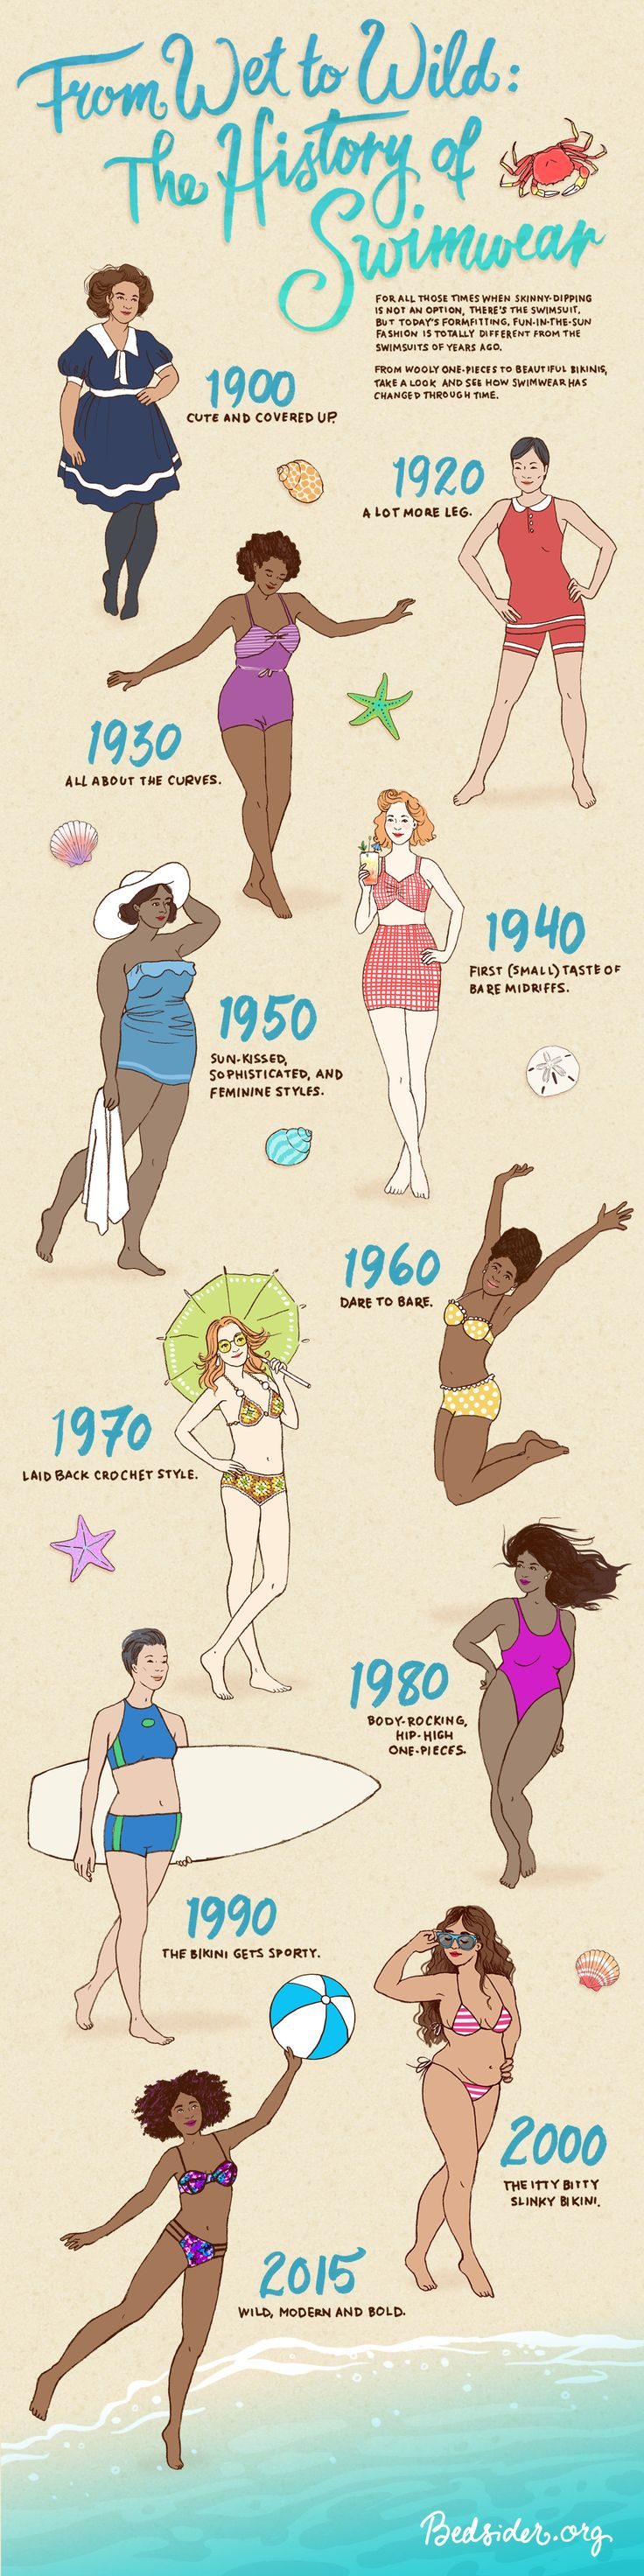 Before you grab a towel, sunscreen, and that hot lifeguard...get your fashion fix and see how swimwear has changed through time.